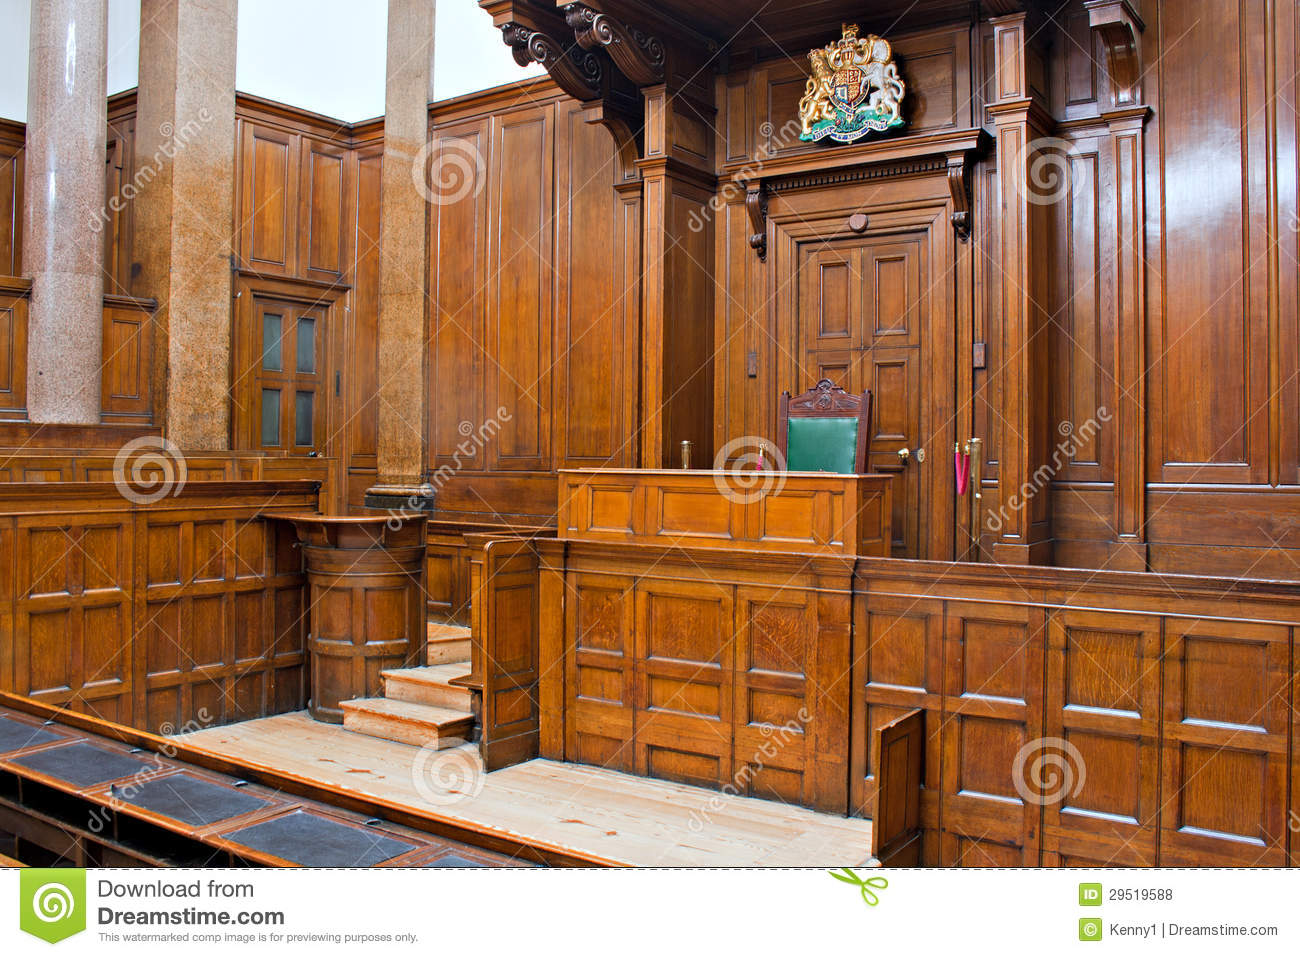 View Of Crown Court Room Inside St Georges Hall L Royalty  : view crown court room inside st georges hall liverpool uk 29519588  from www.dreamstime.com size 1300 x 957 jpeg 246kB